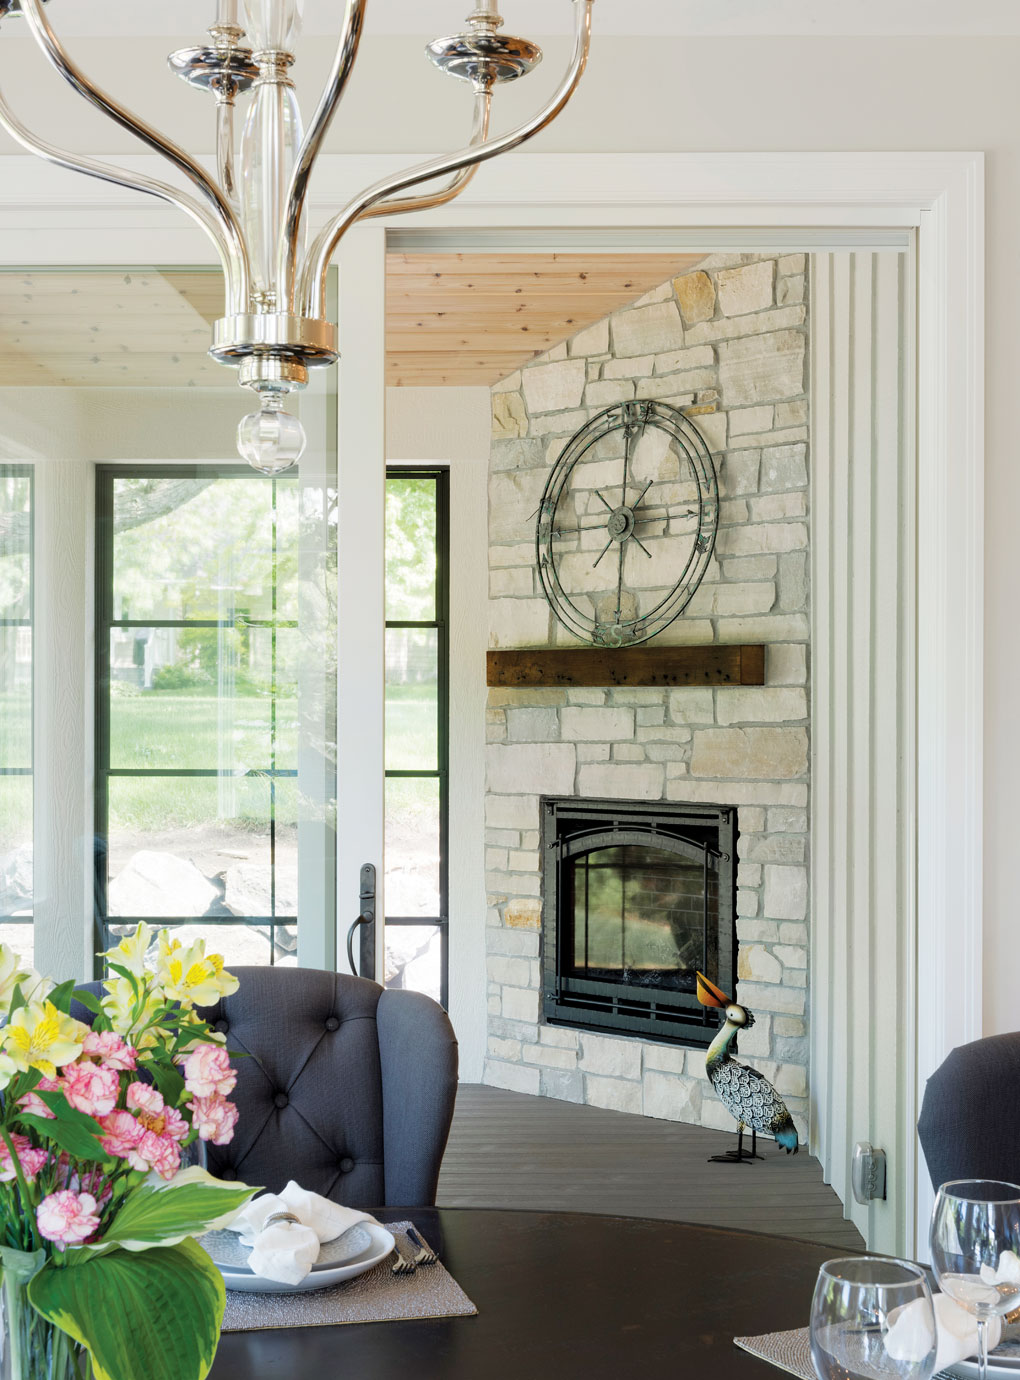 A look into a patio reveals a floor-to-ceiling, stone fireplace with a large clock set on the mantel.